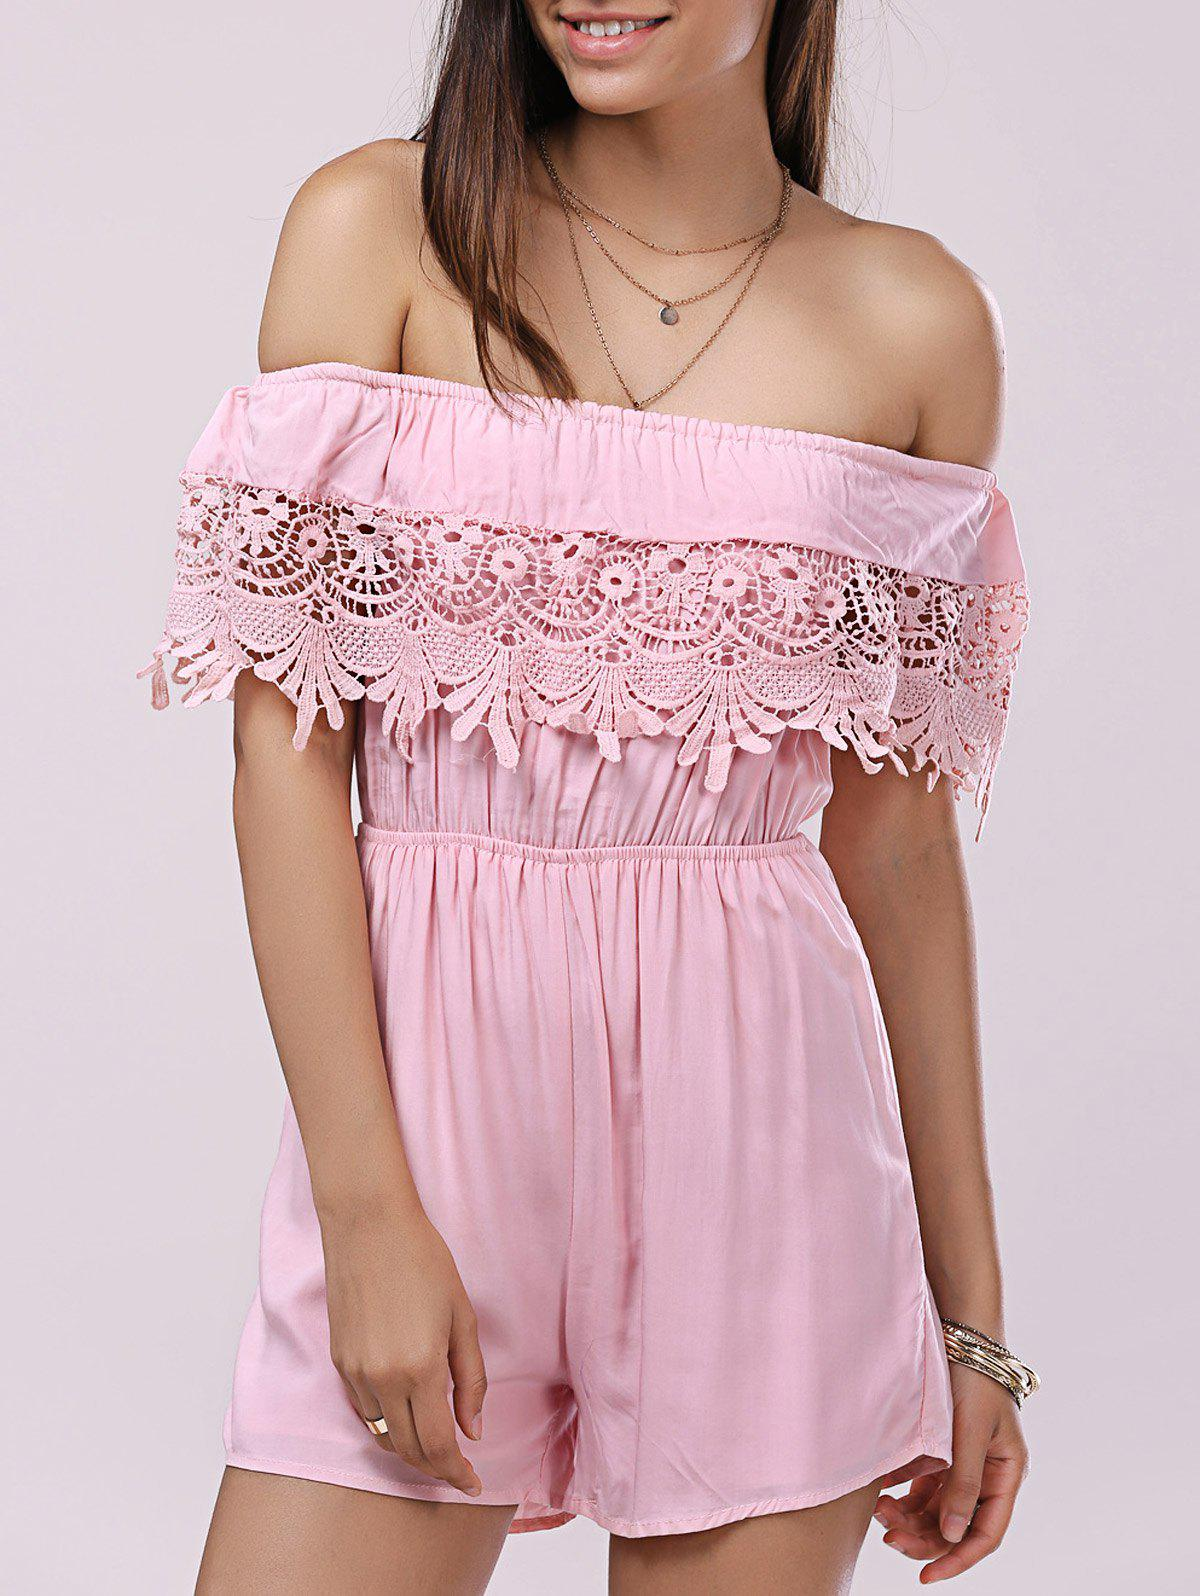 Casual Women's Solid Color Off The Shoulder  Lace Romper - LIGHT PINK ONE SIZE(FIT SIZE XS TO M)